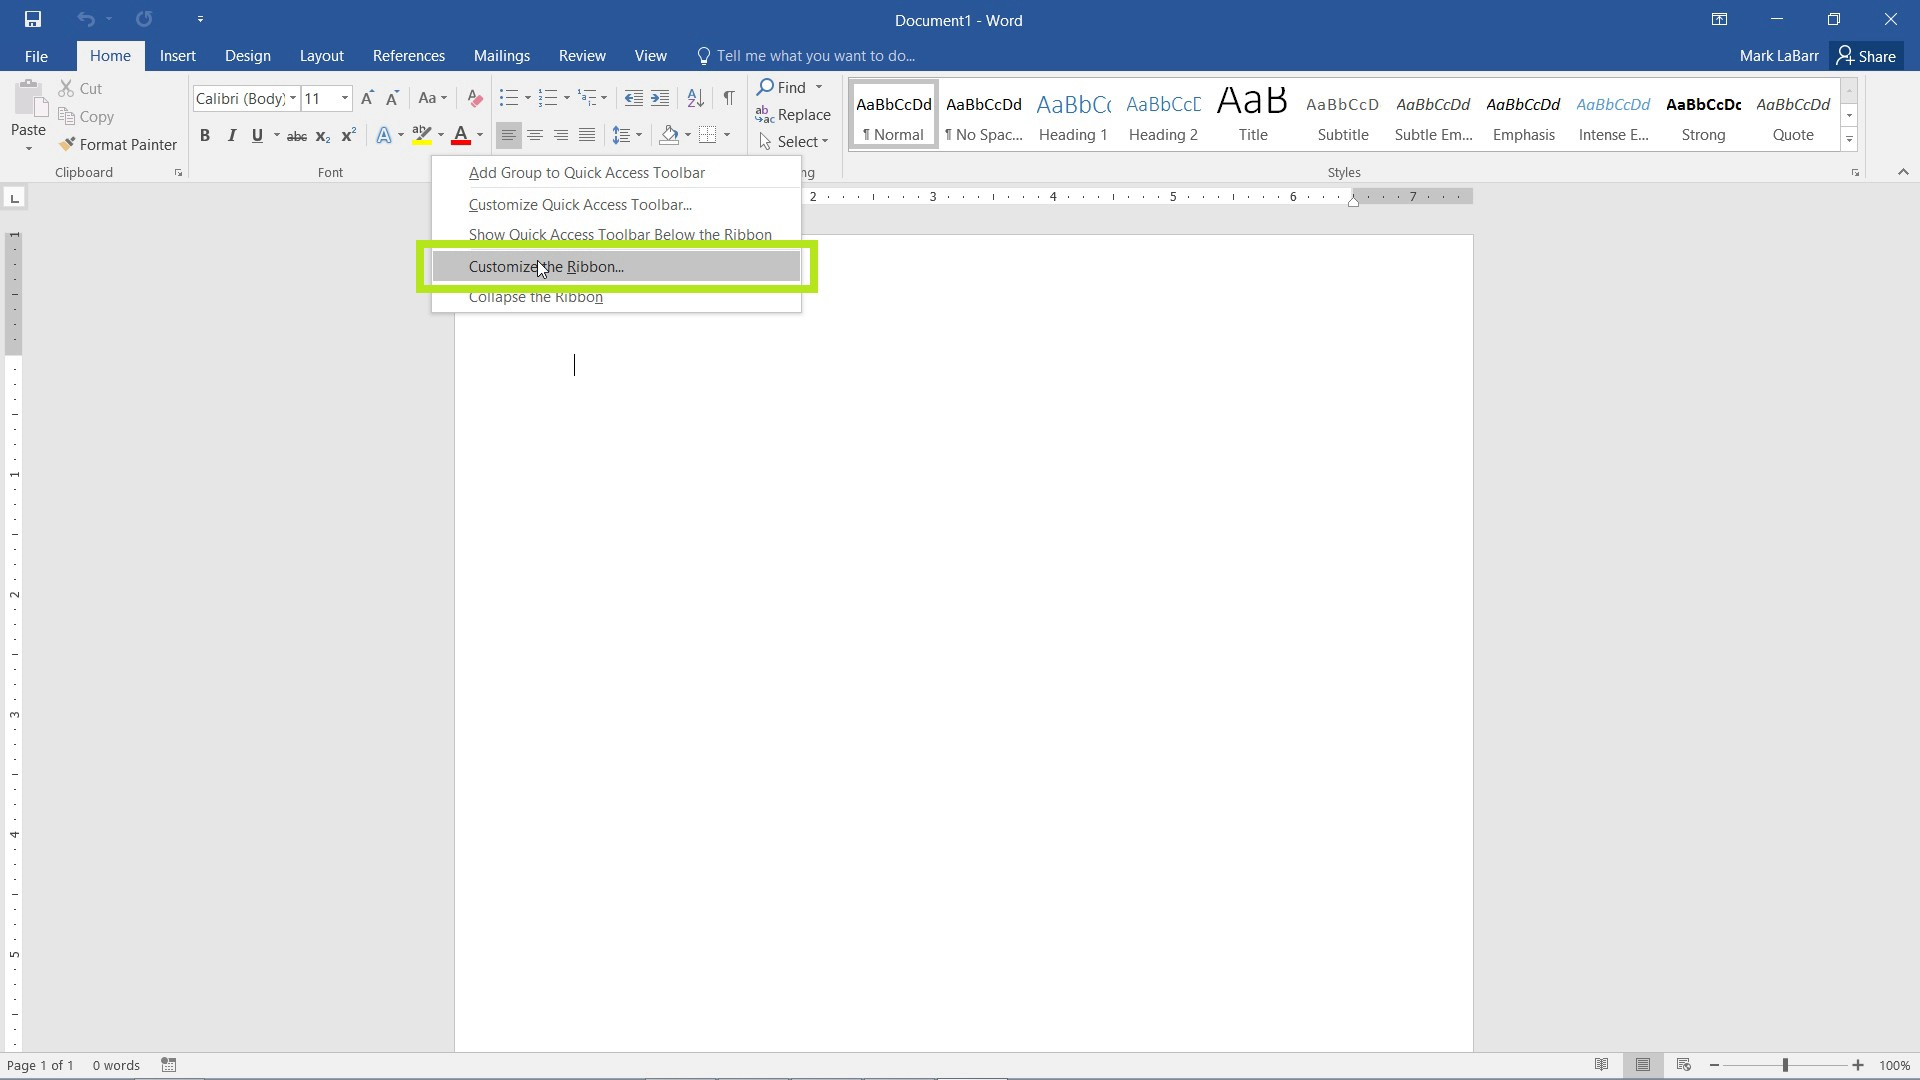 Customize the Ribbon in Word 2016